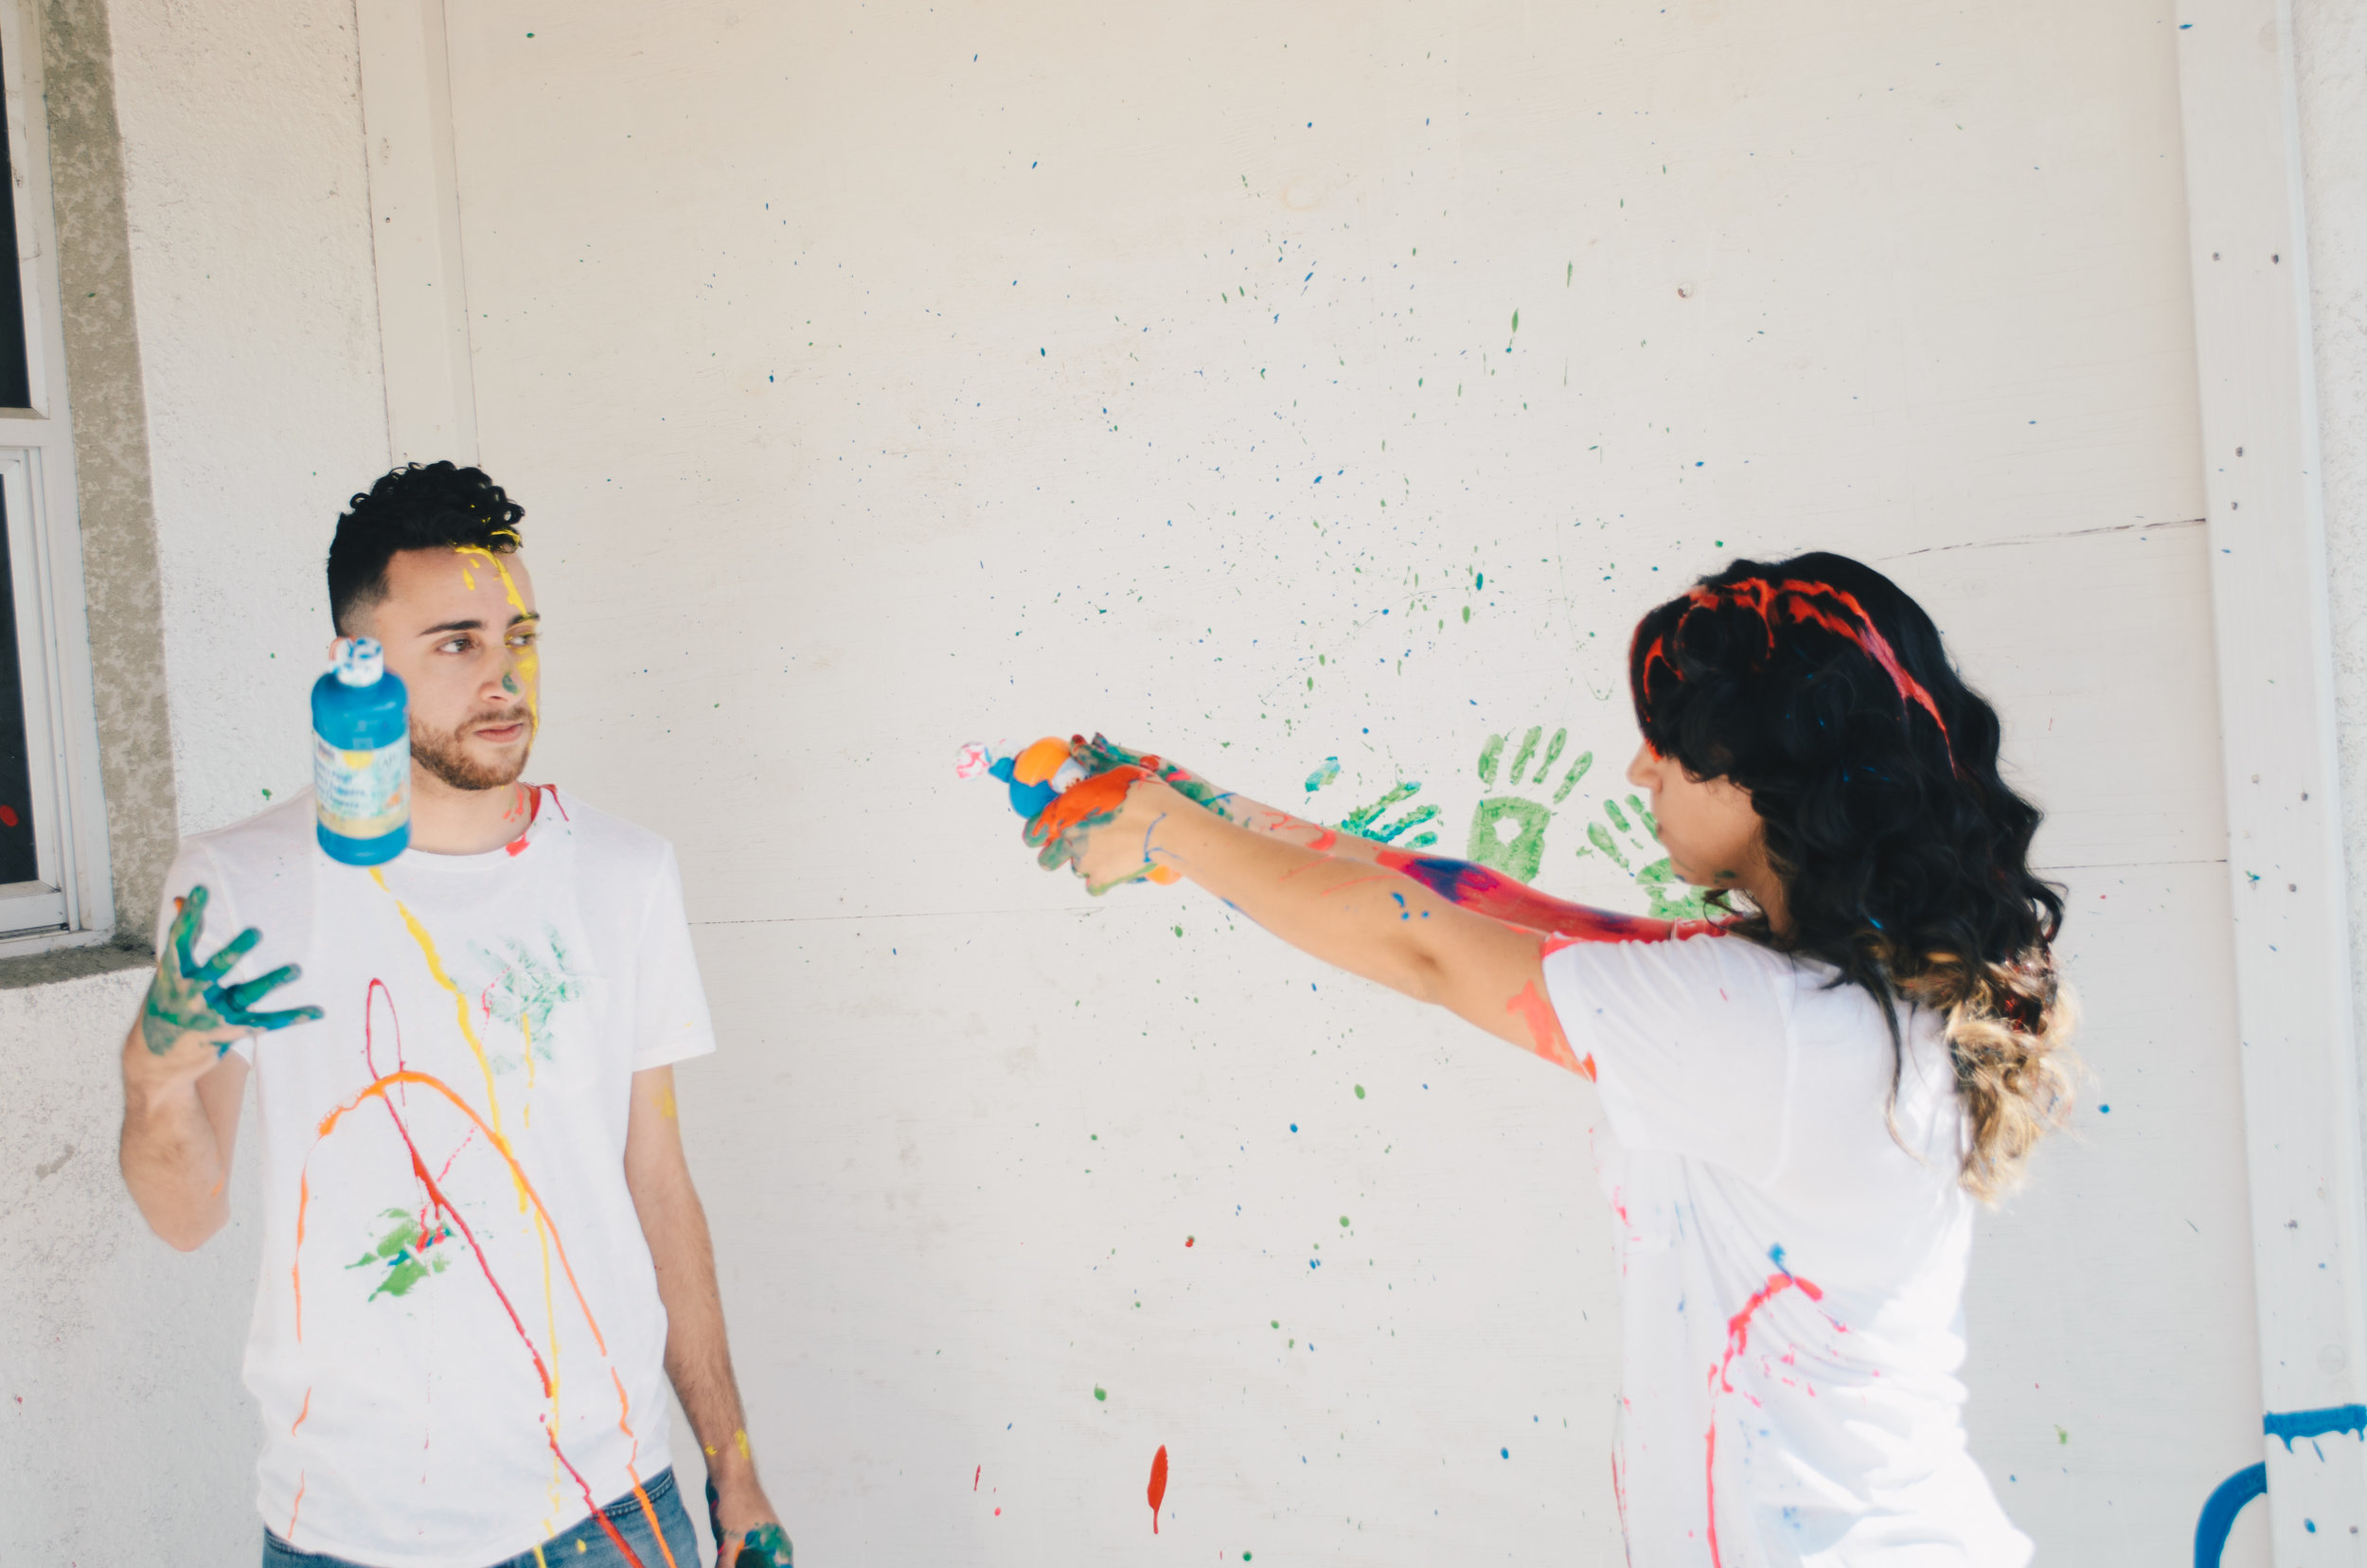 central-fl-christian-paint-war-session-10.jpg